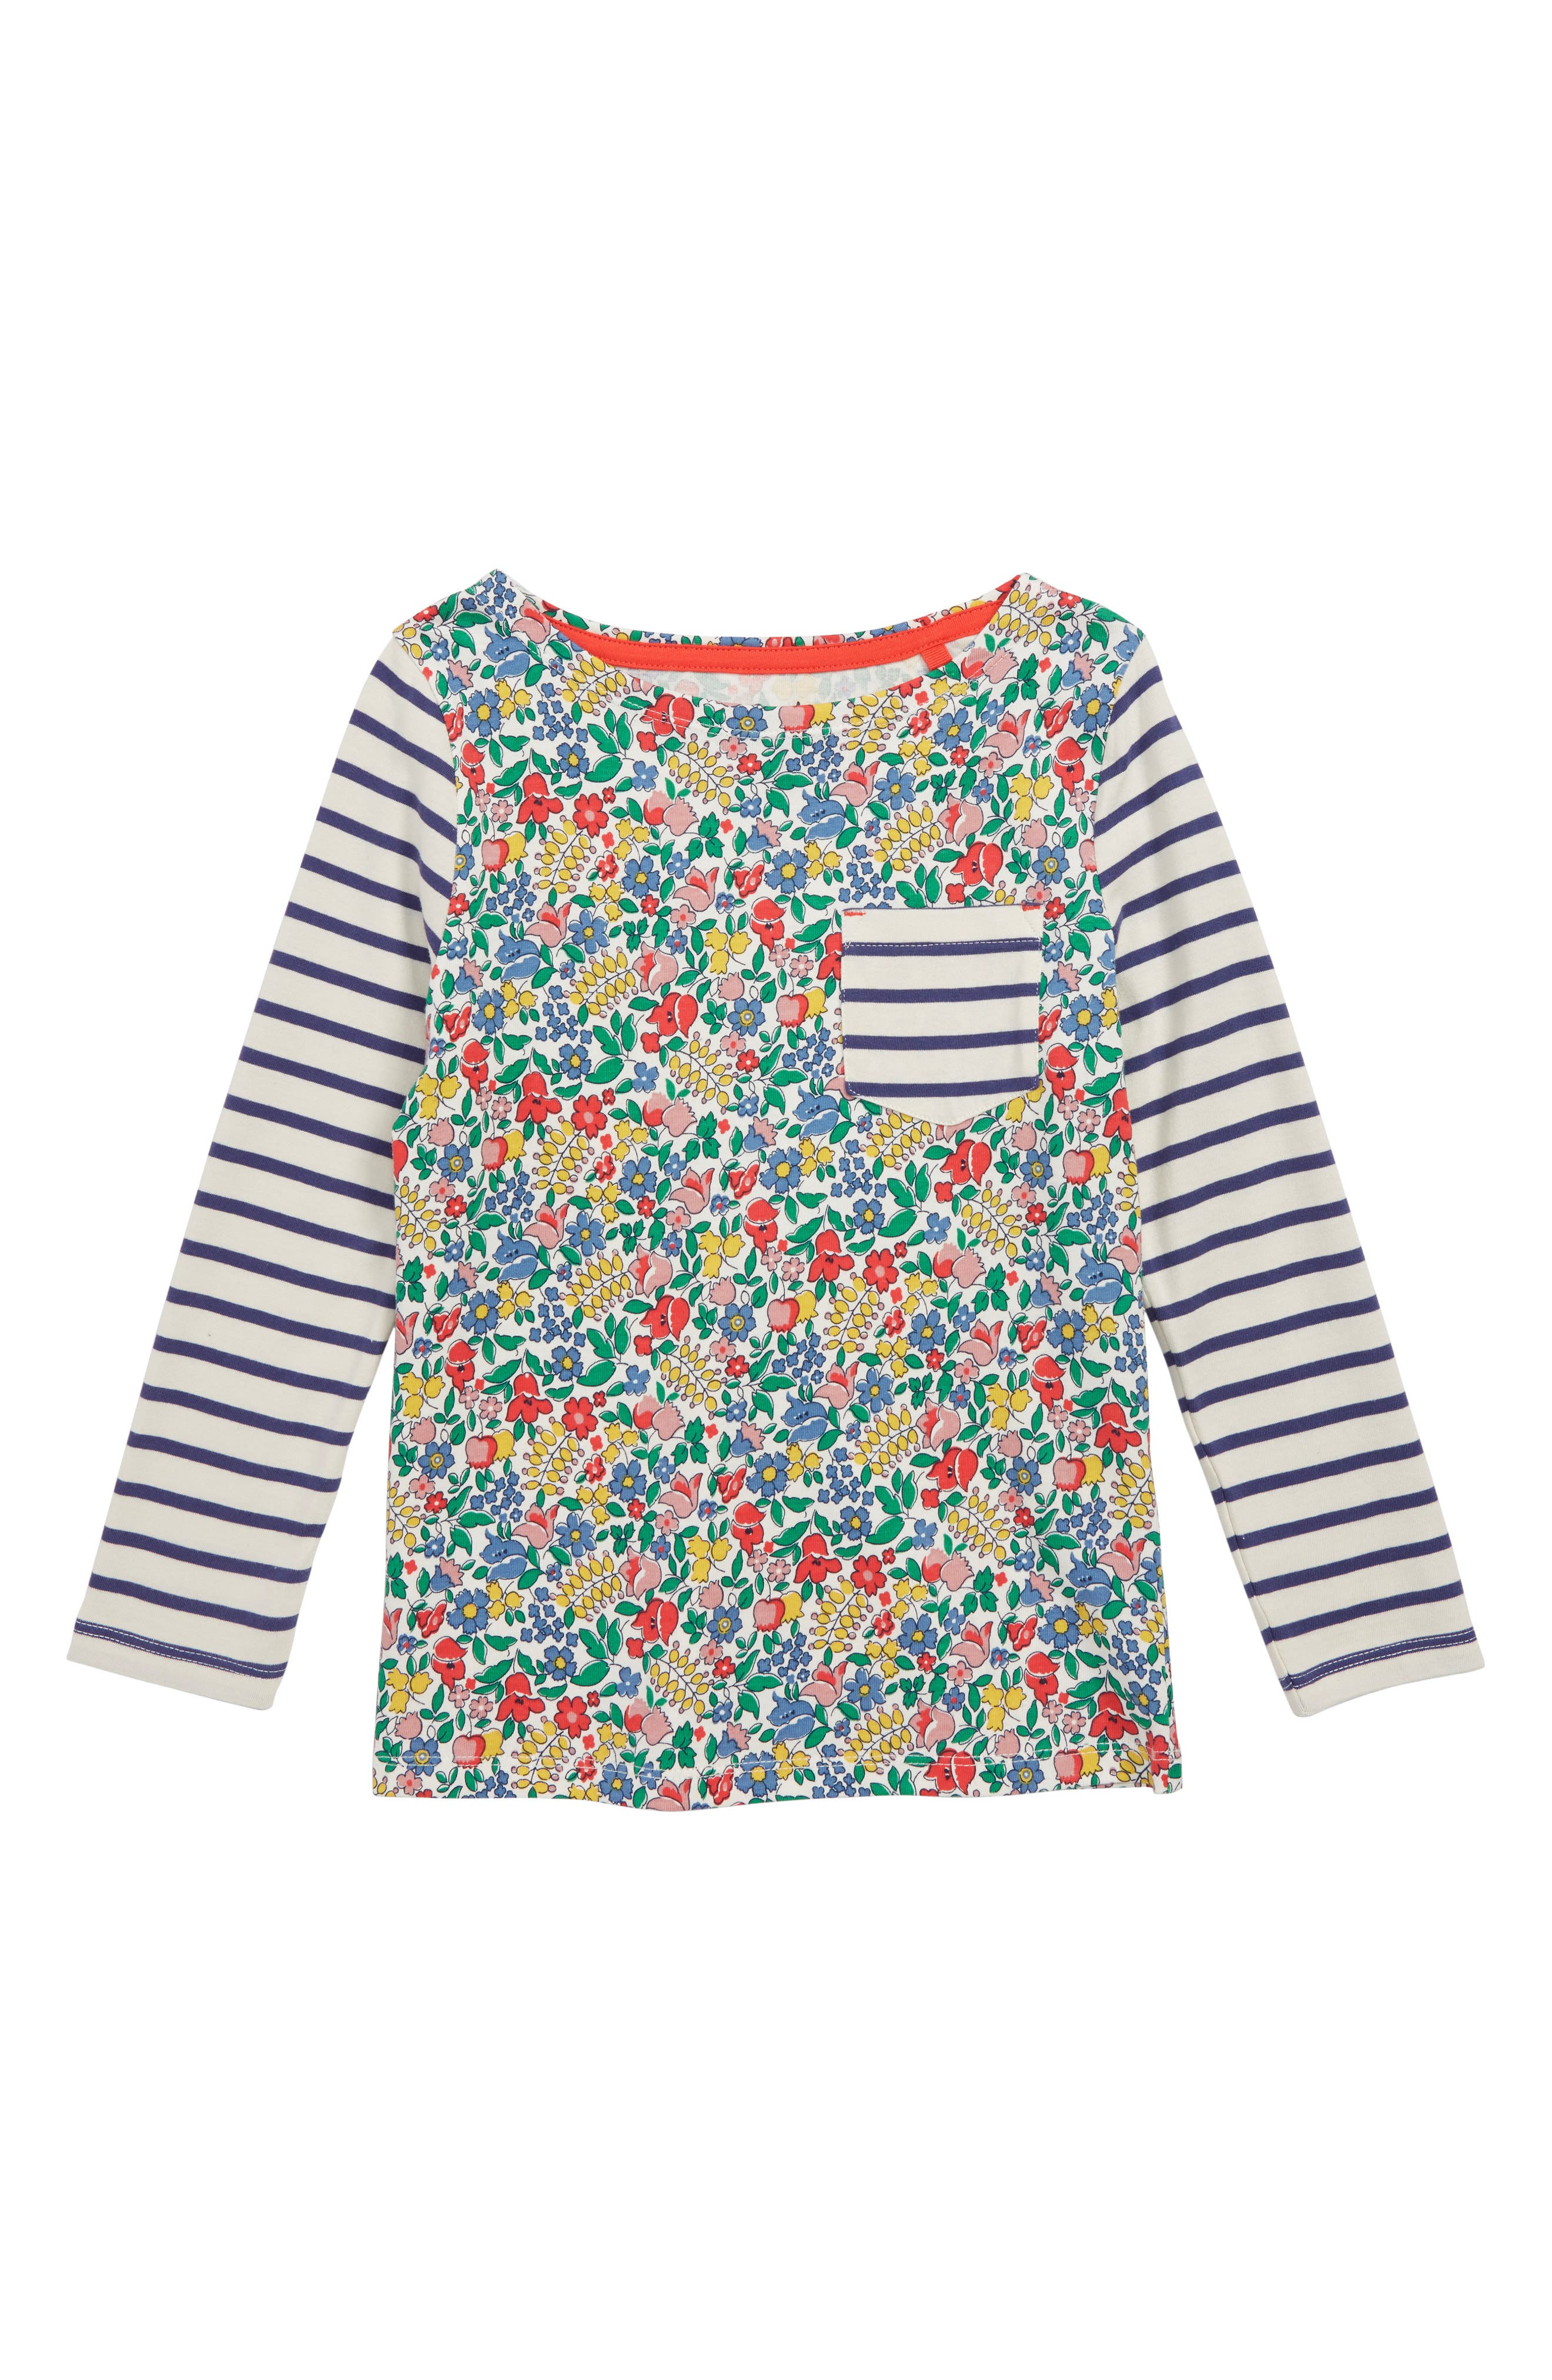 Hotchpotch T-Shirt,                         Main,                         color, MULTI FLOWERBED